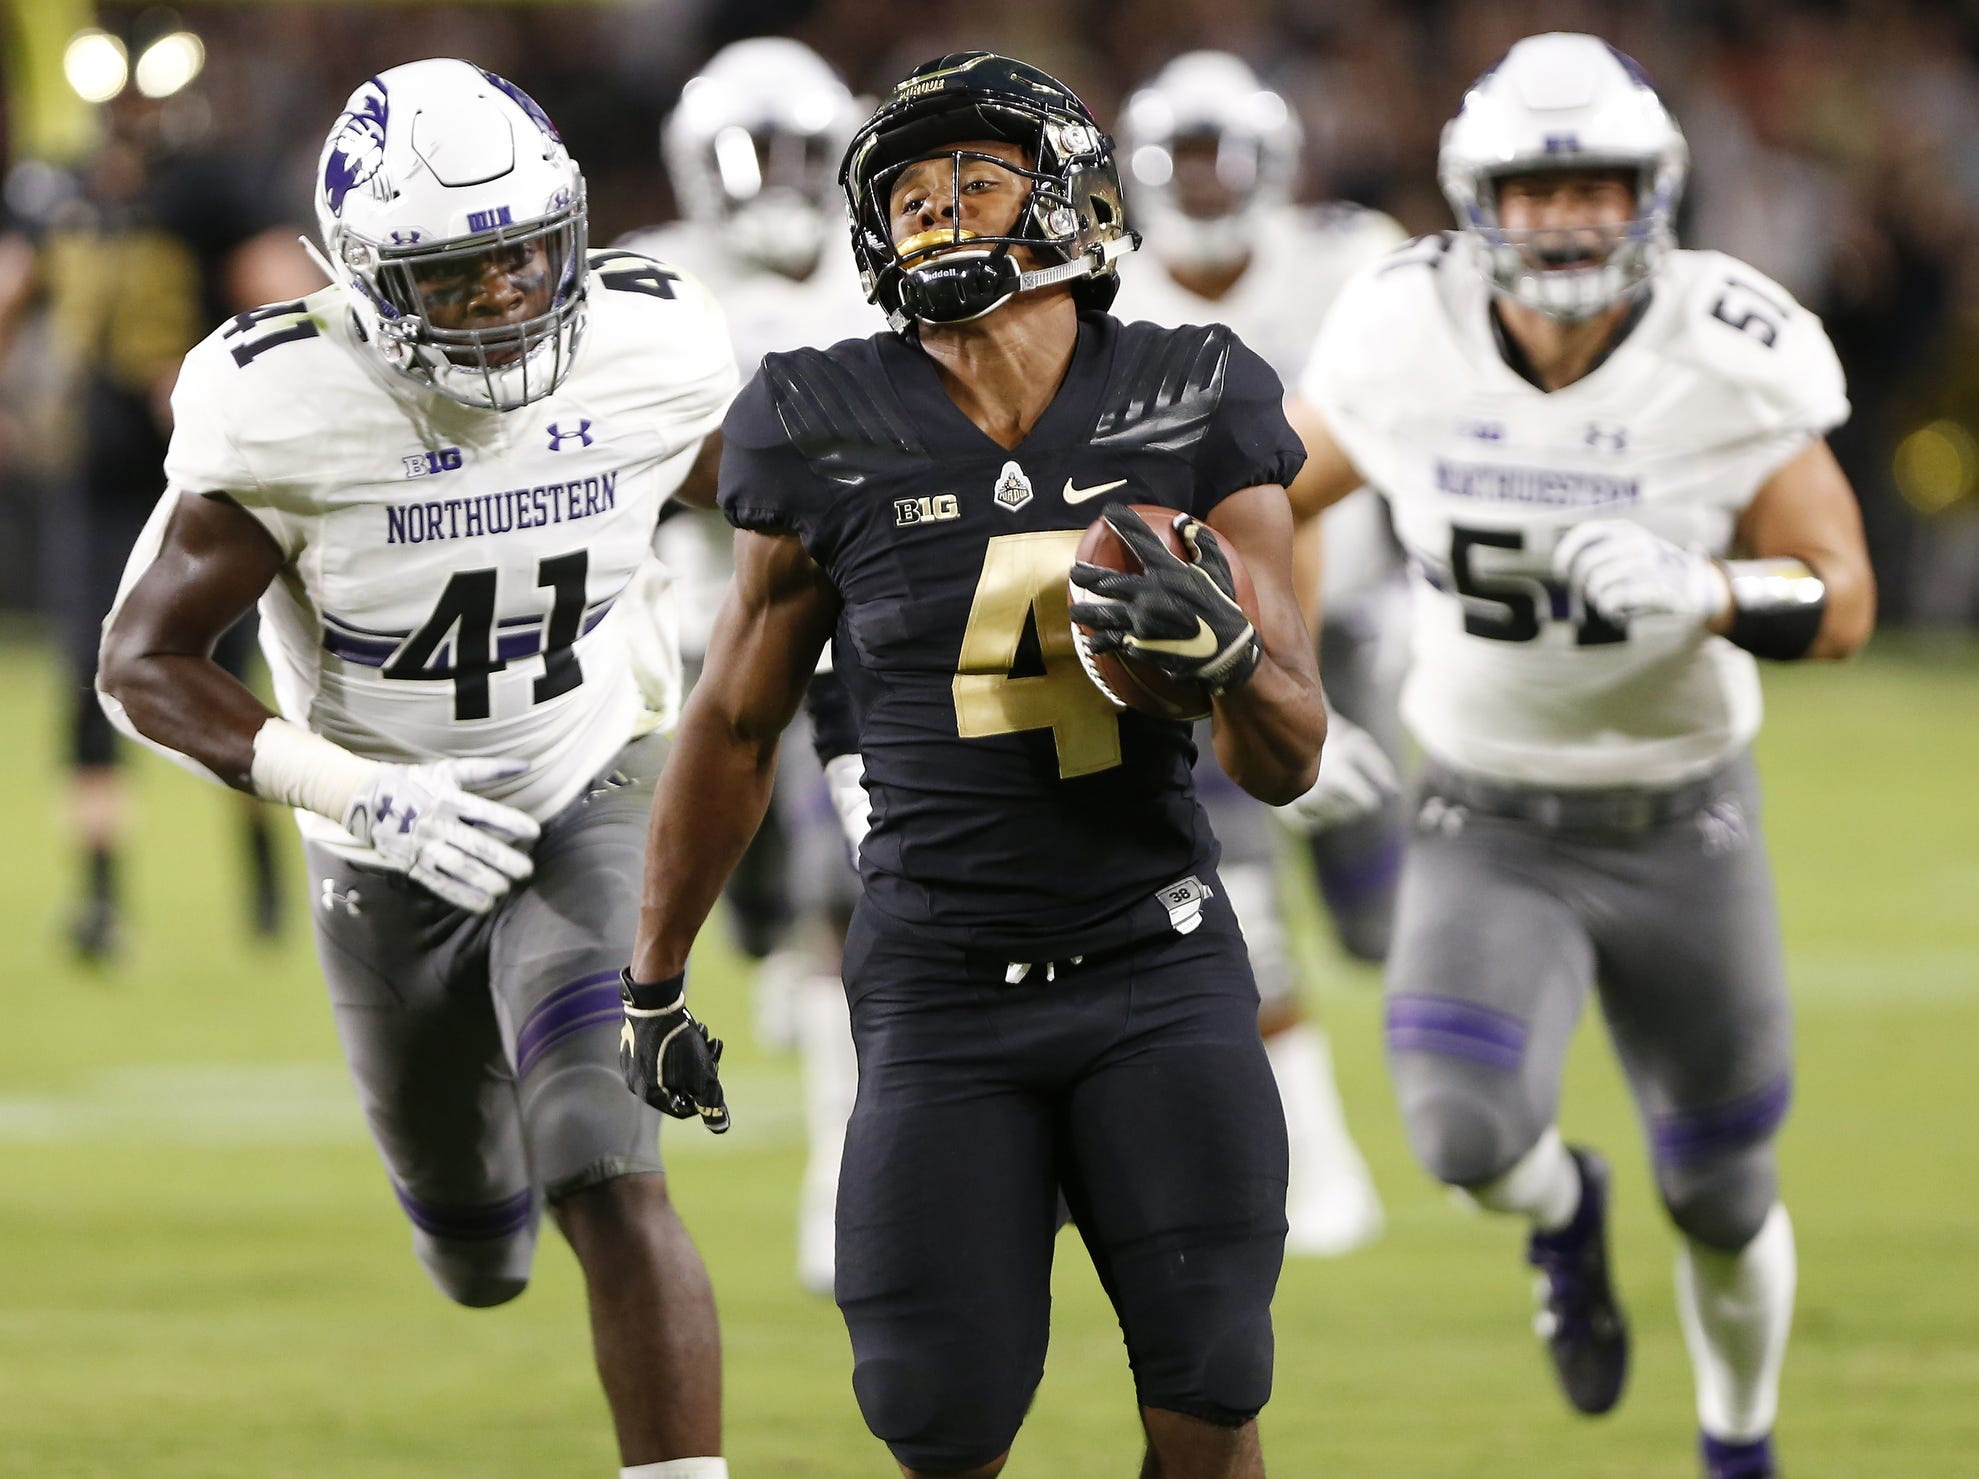 Rondale Moore of Purdue on a 76-yard touchdown run at 1:02 in the first quarter against Northwestern Thursday, August 30, 2018, in West Lafayette. Moore's score tied the game at 14-14. Northwestern defeated Purdue 31-27.